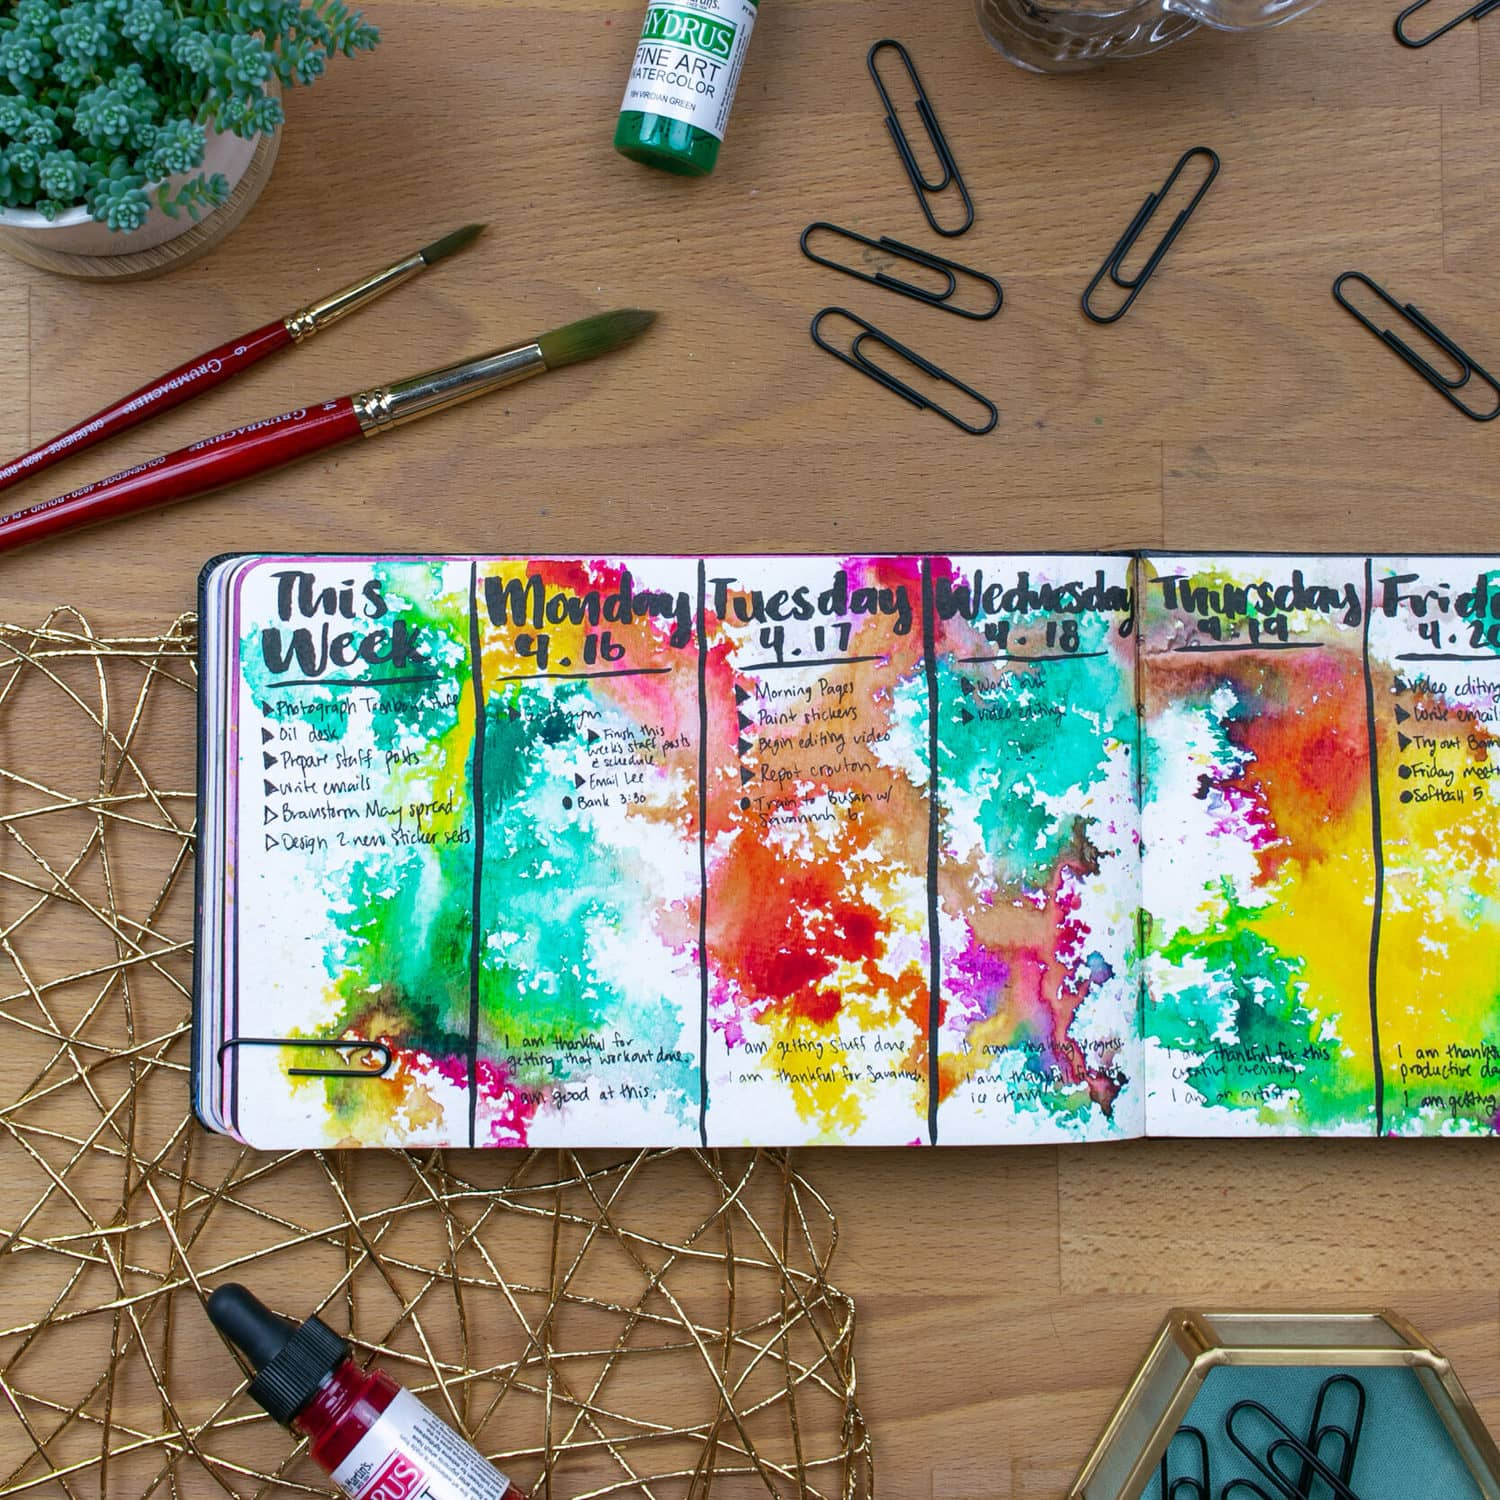 Open journal on desk with vibrant watercolor splashes, desk is covered in various office supplies.